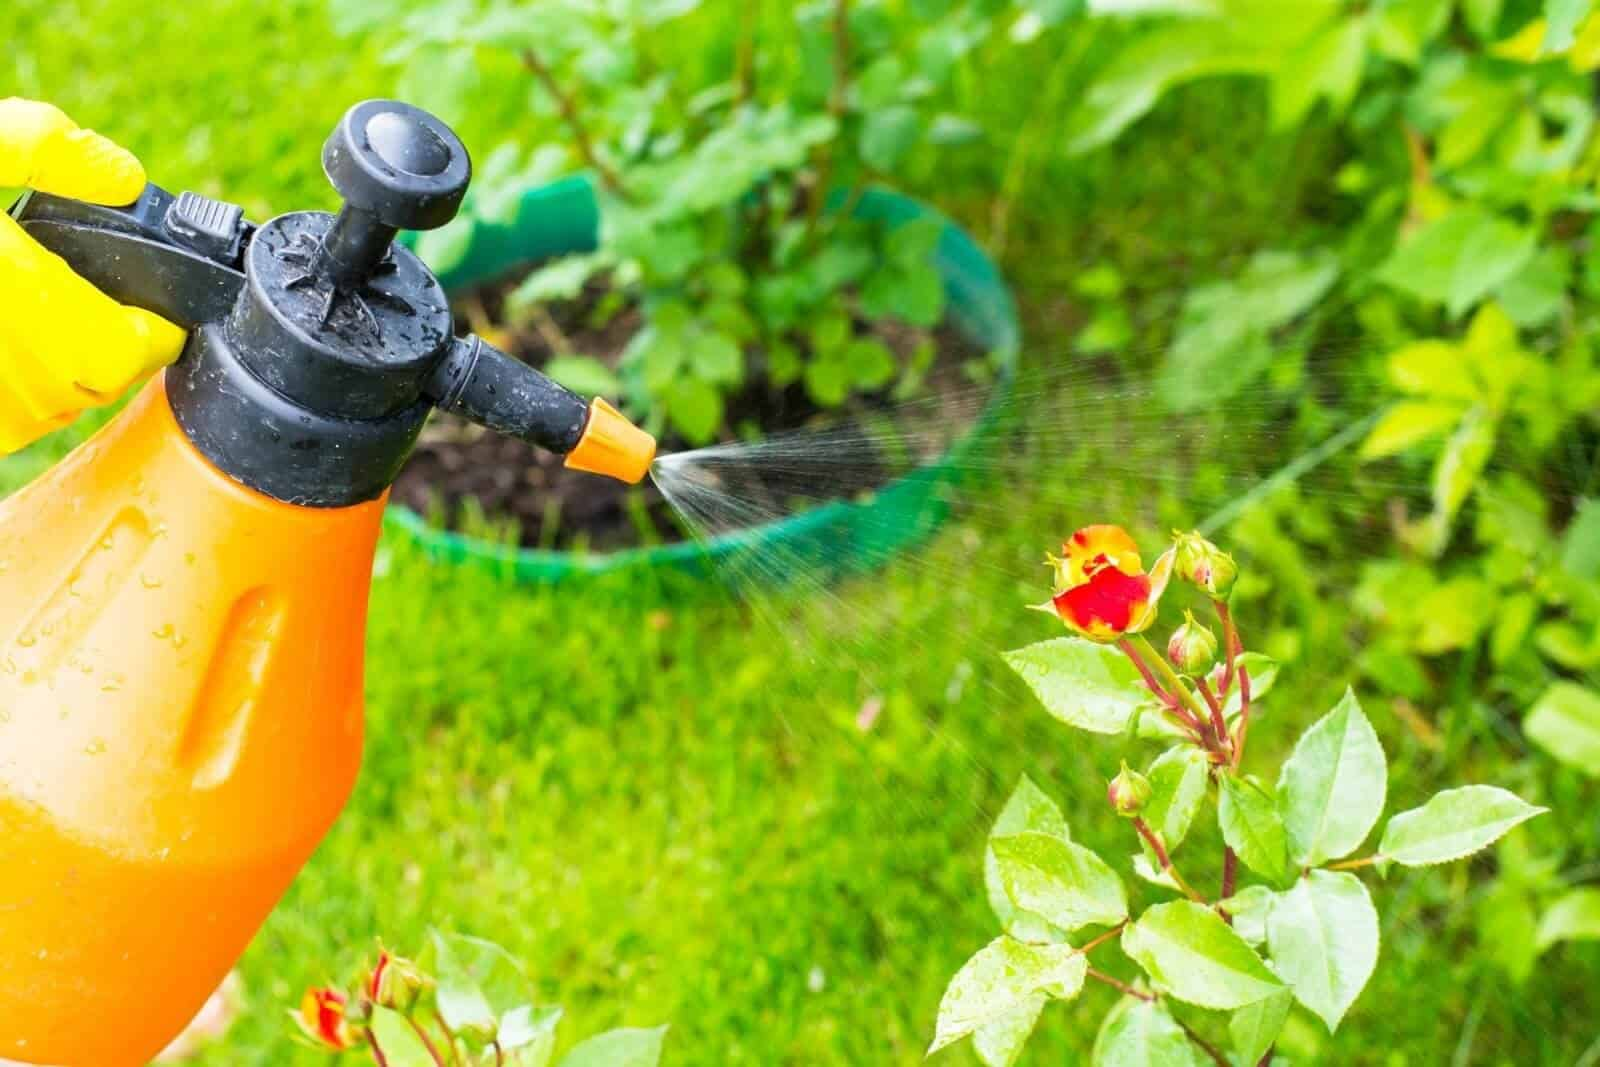 Best Vegetable Garden Insect Spray with Spinosad